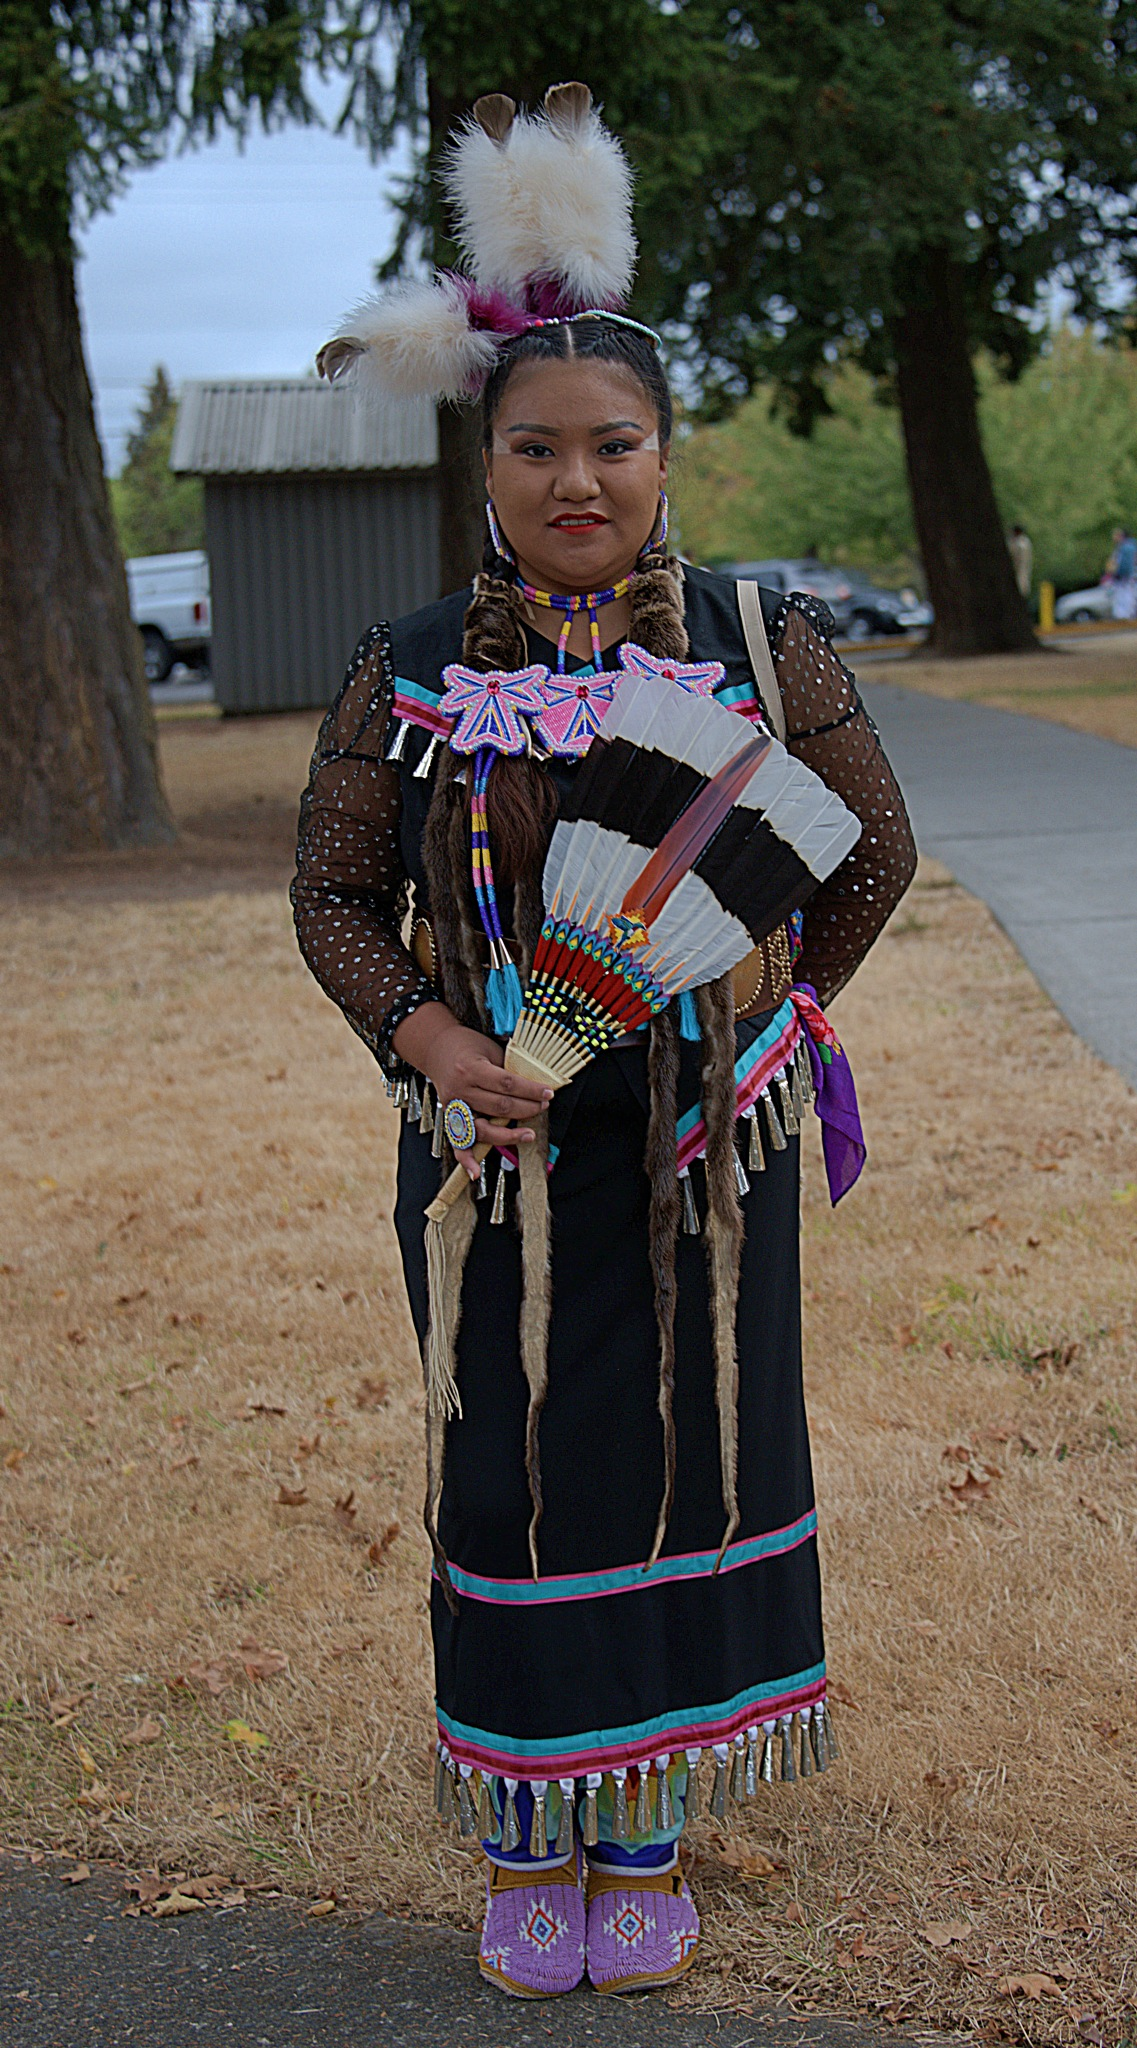 West Coast Native American by pscottwong